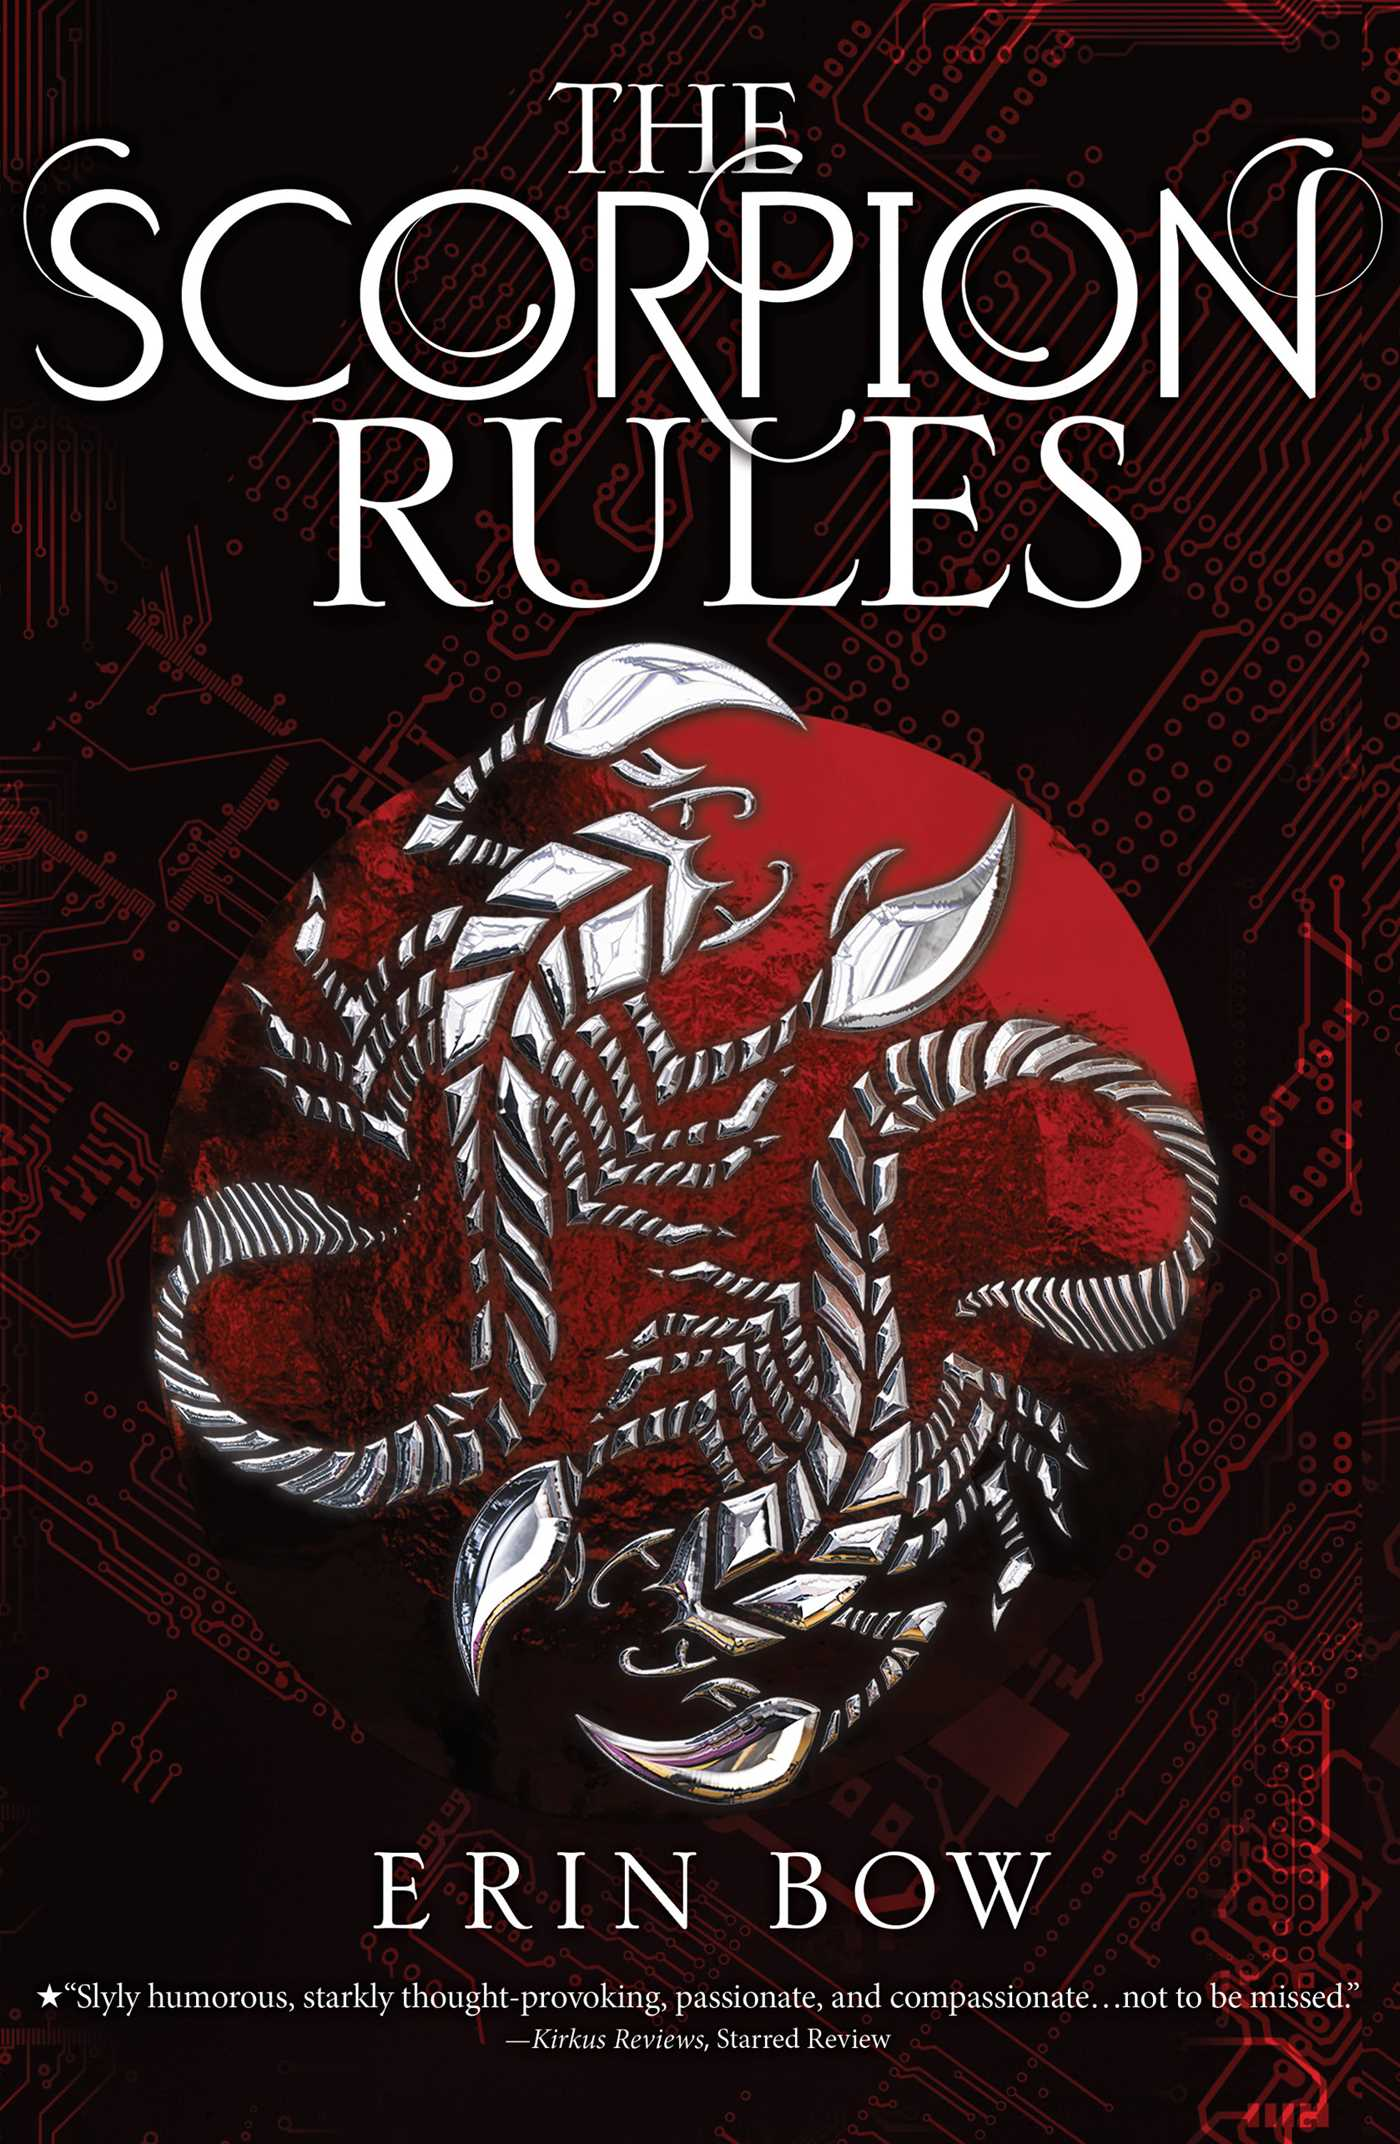 Image result for the scorpion rules book